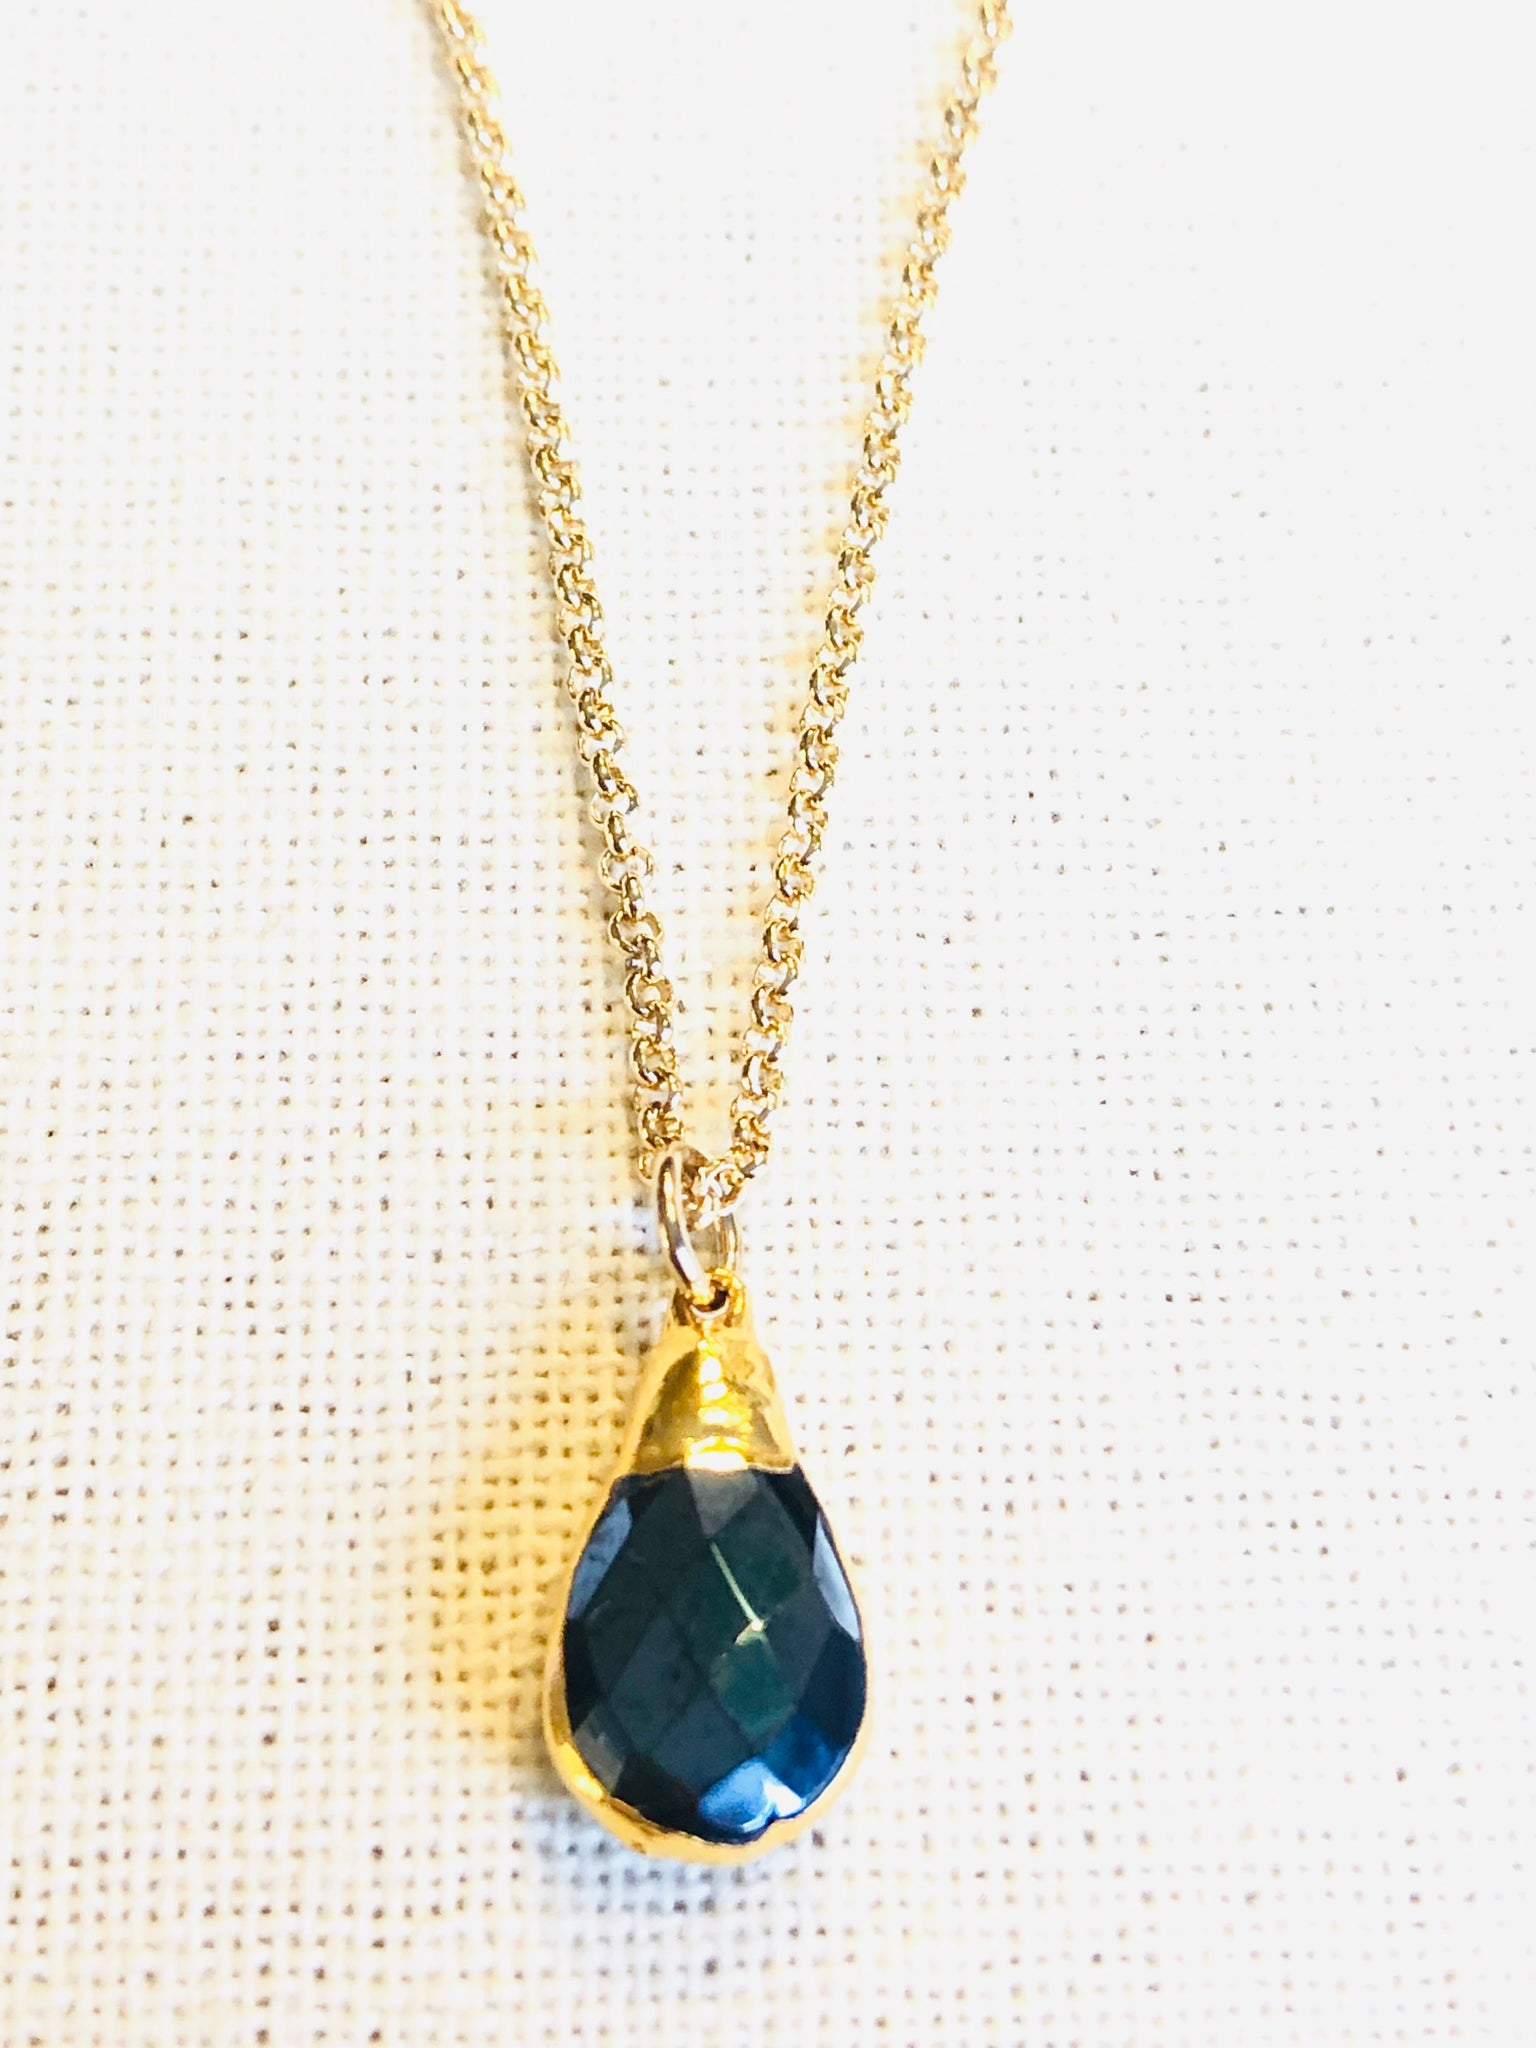 Black Obsidian Charm Necklace on Gold Chain by Sage Machado - The Sage Lifestyle